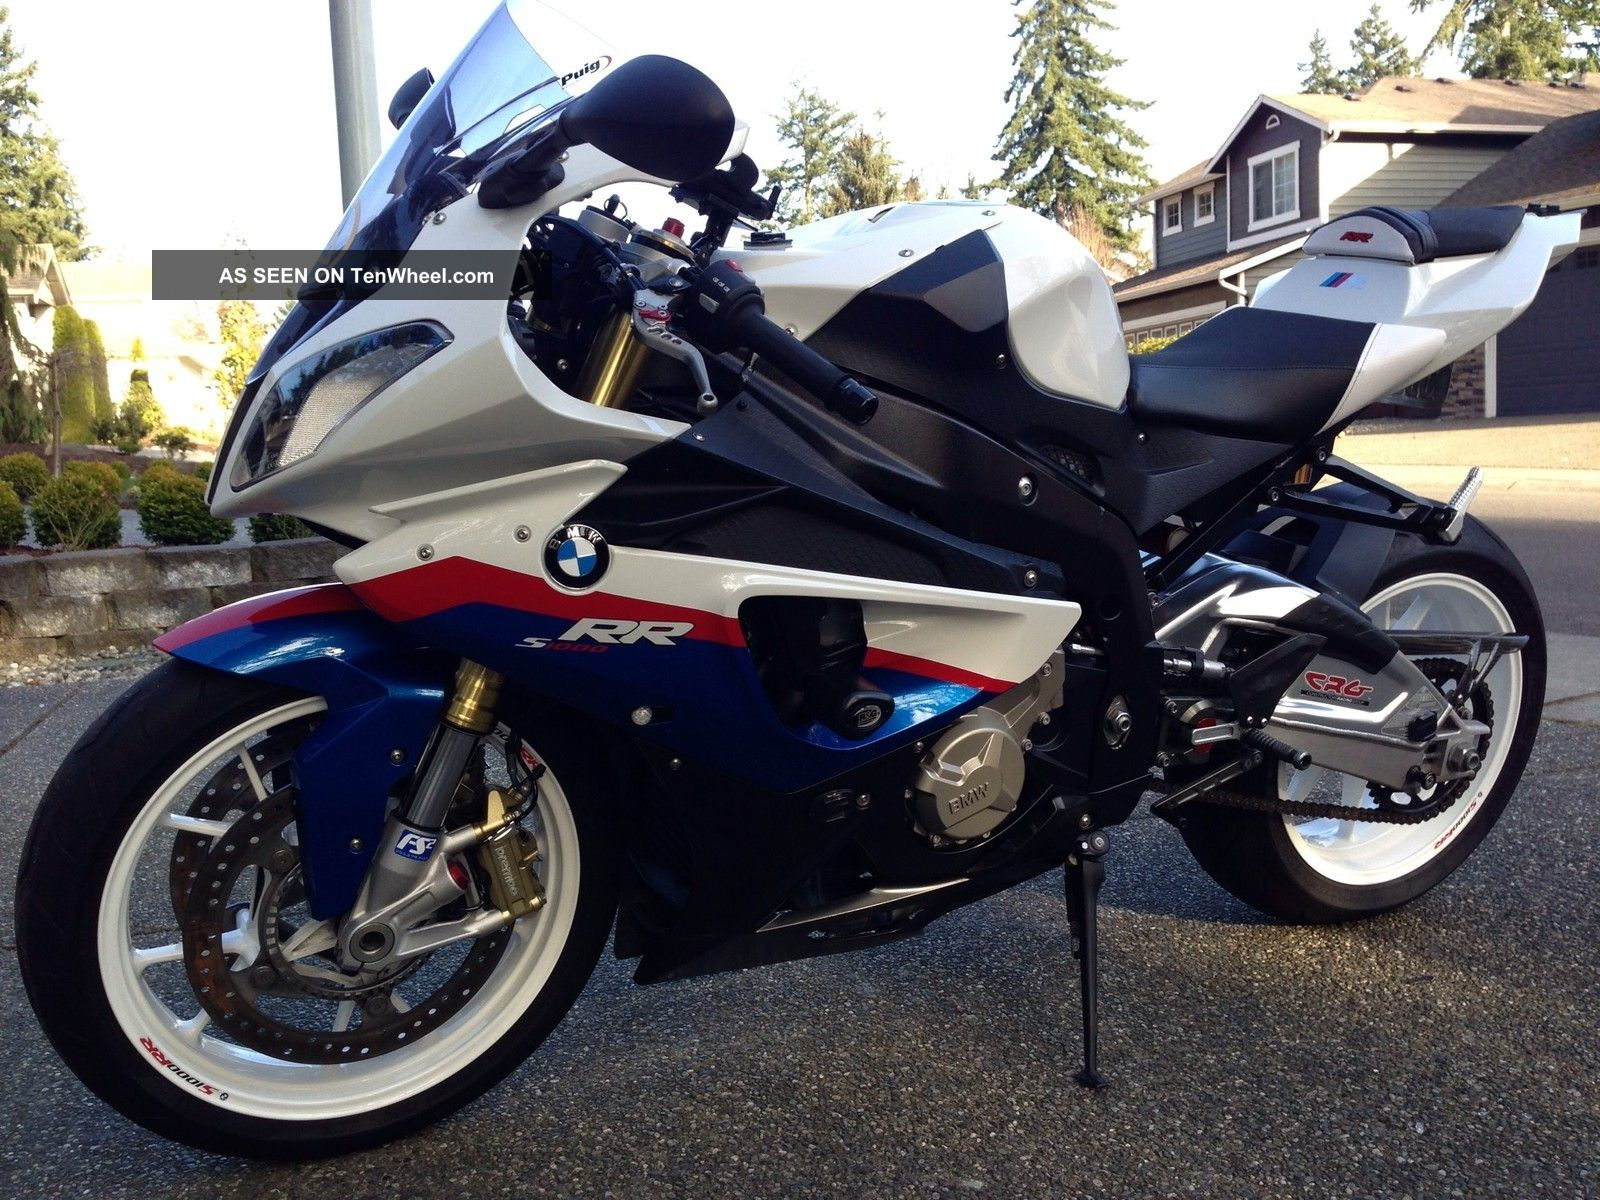 2011 Bmw S1000rr Many Upgrades,  All Options Other photo